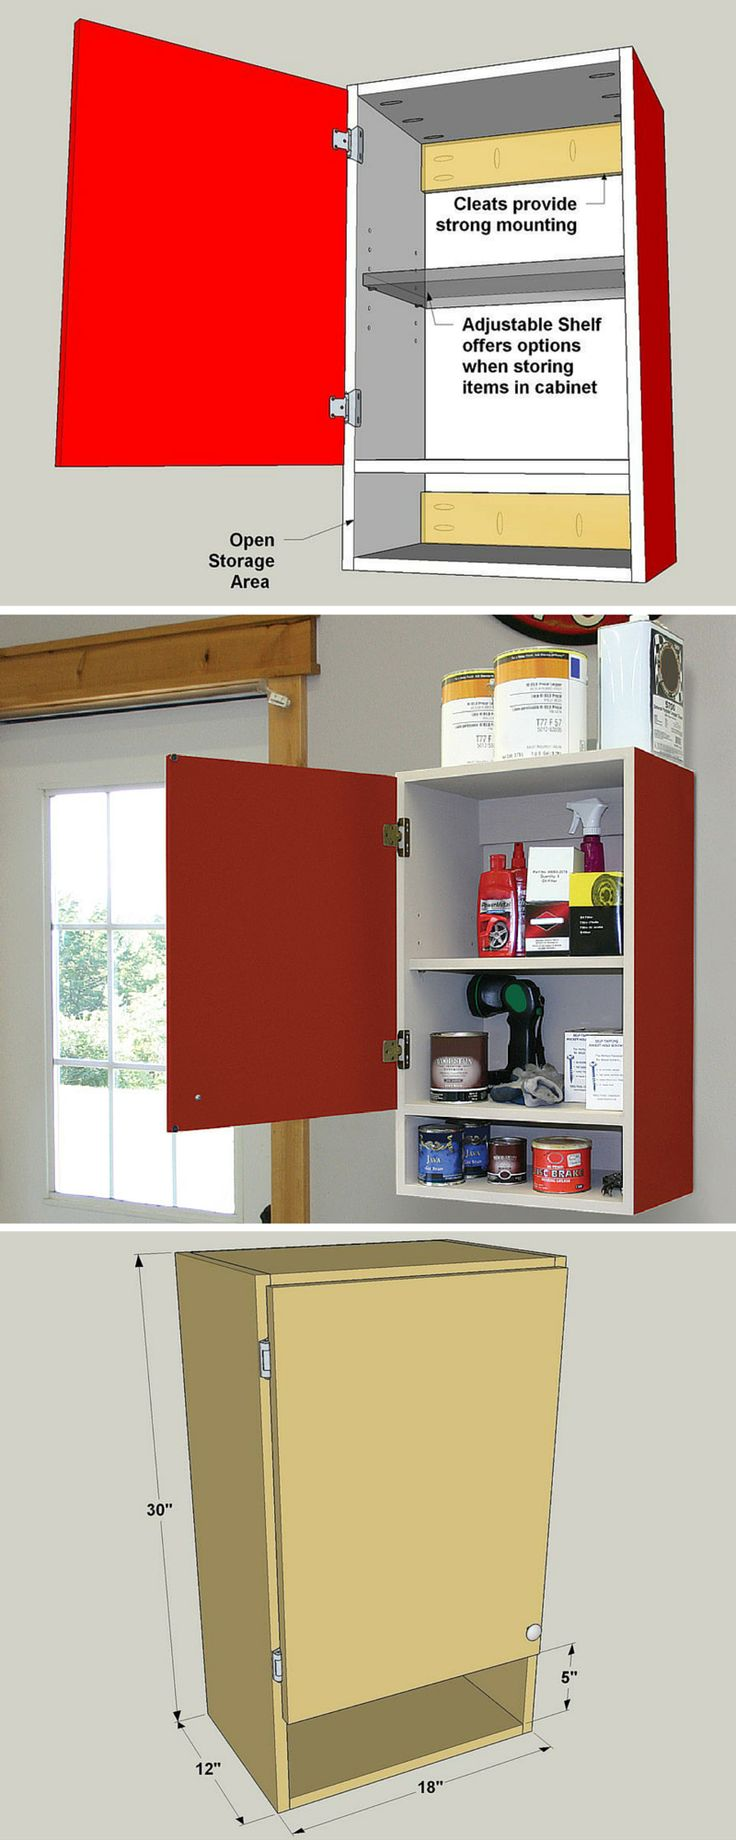 Keep your tools and supplies close at hand with this easy-to-build wall cabinet. It offers plenty of enclosed space to conceal clutter, and an adjustable shelf for customizable storage. FREE PLANS at buildsomething.com